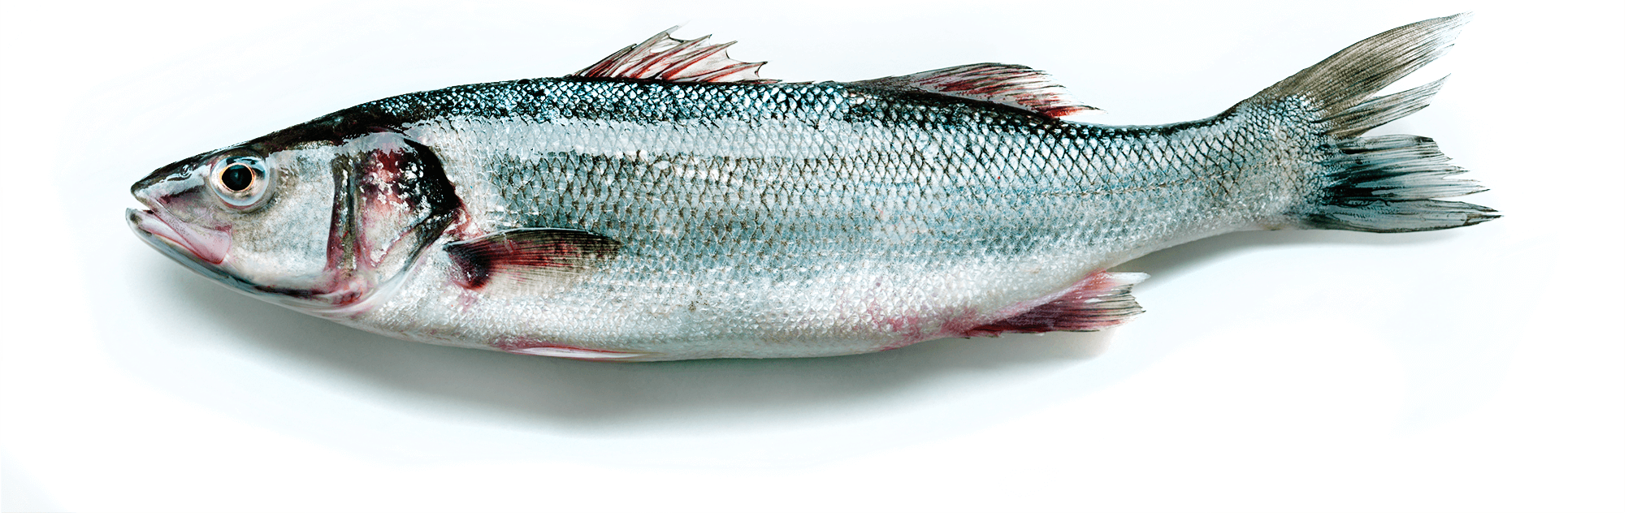 seabass tiny png3.png